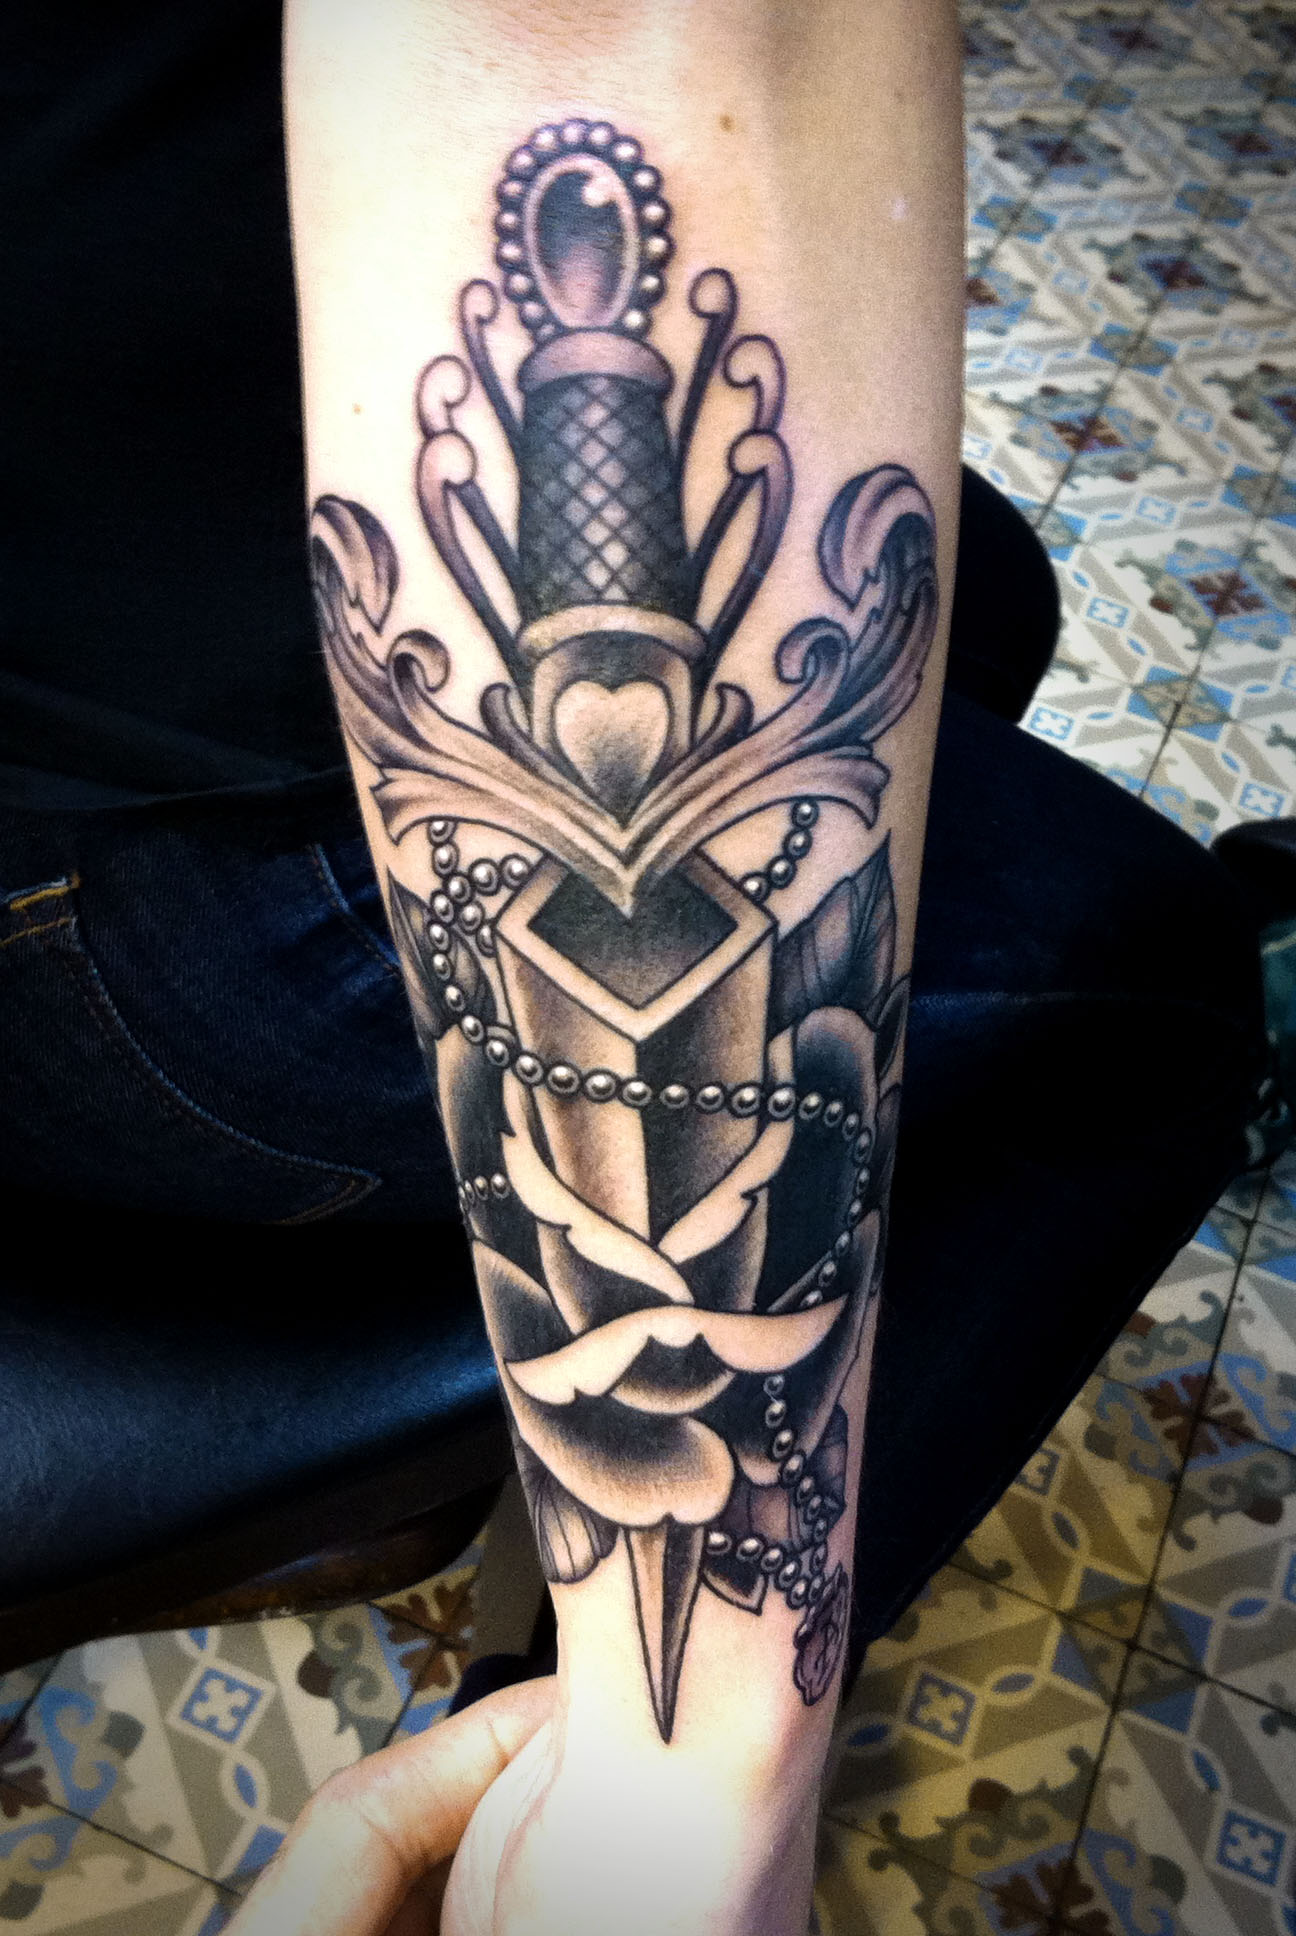 Dagger Rose Tattoo On Lower Arm